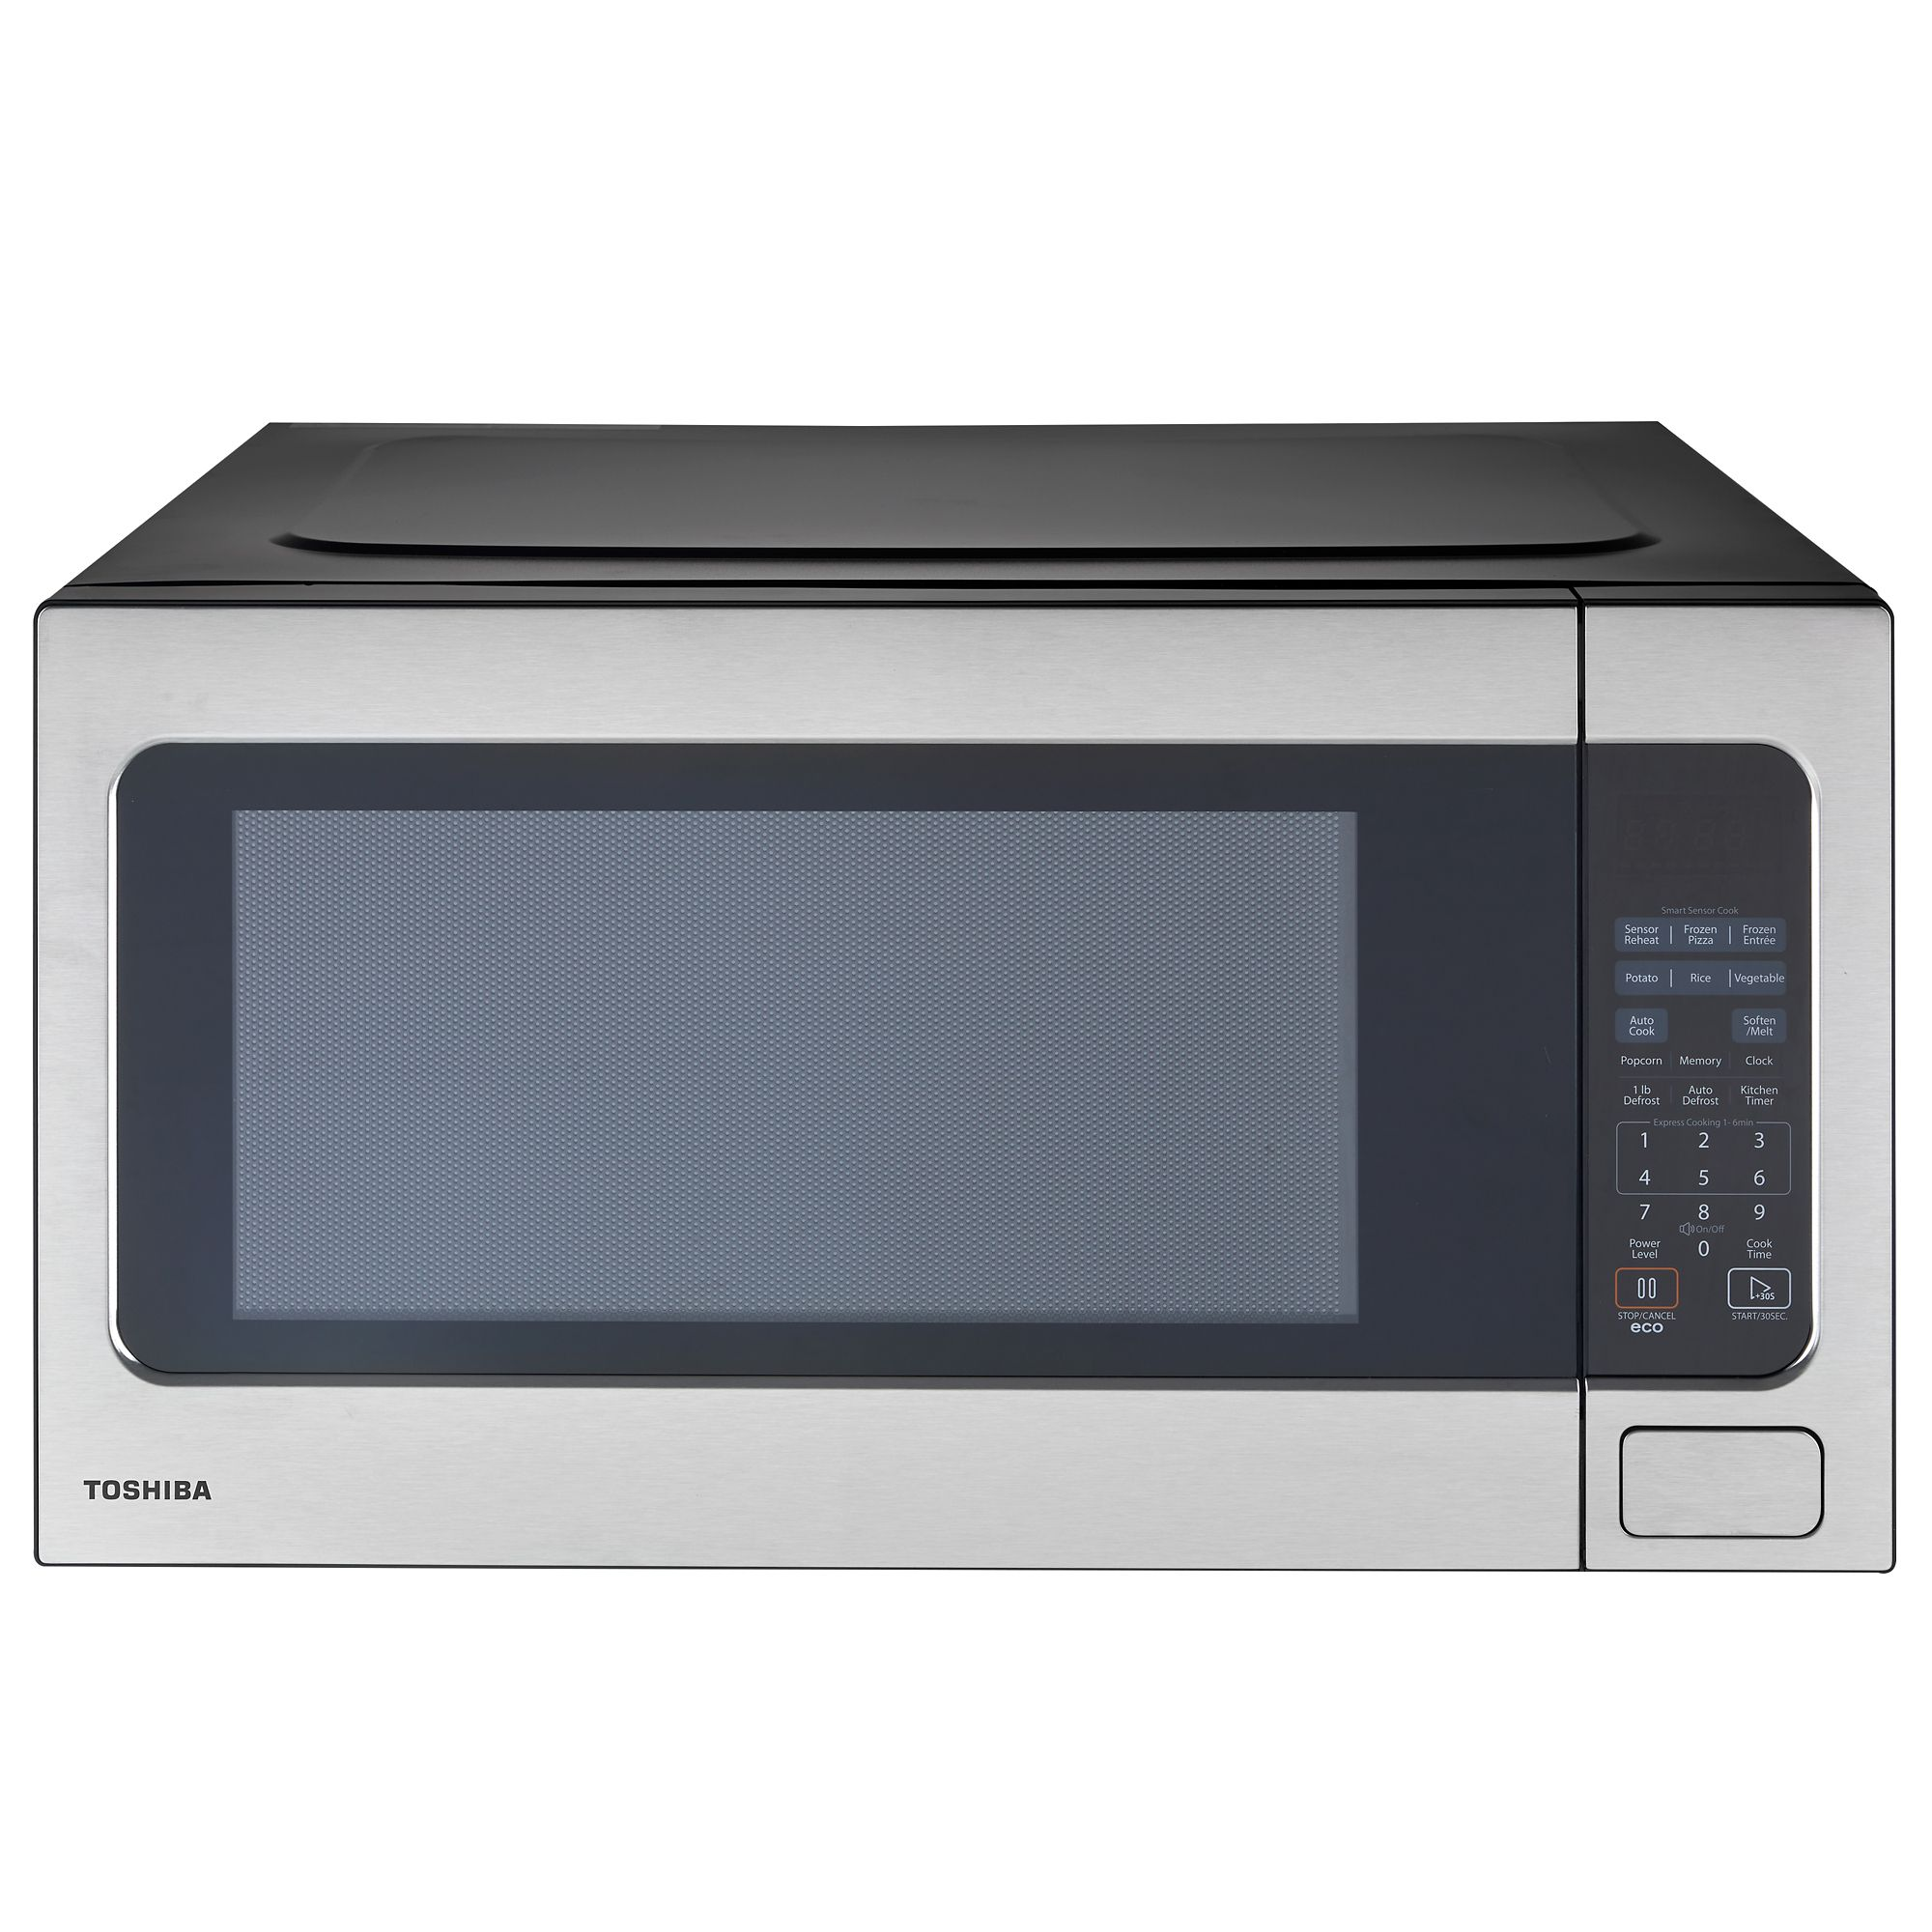 Toshiba 2 2 Cu Ft 1200w Microwave Stainless Steel Shefinds